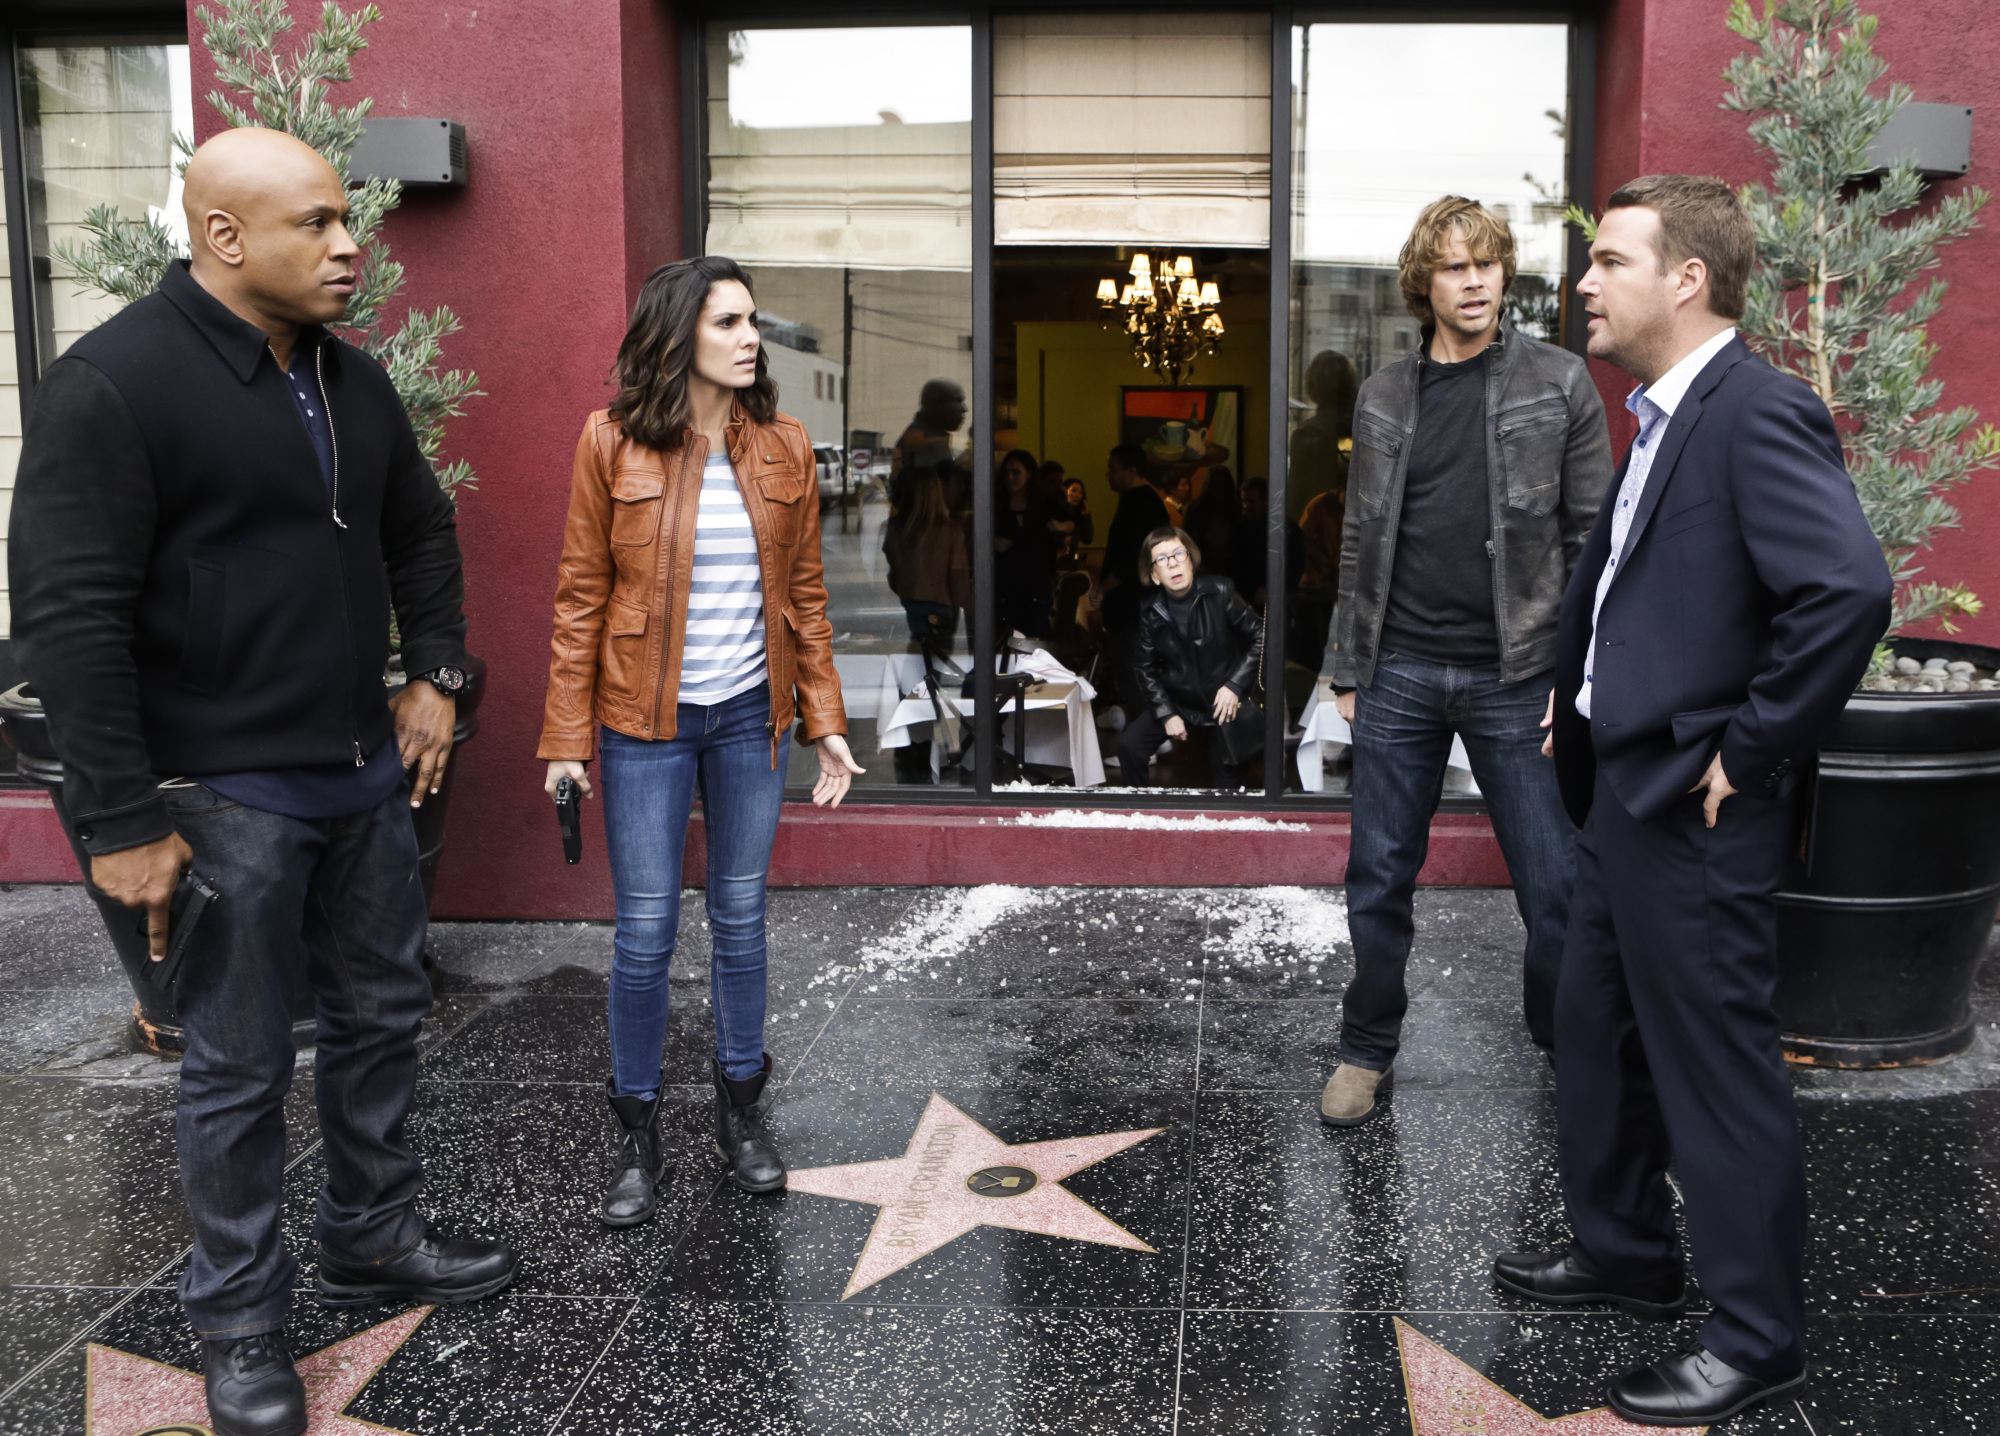 LL COOL J as Special Agent Sam Hanna, Daniela Ruah as Special Agent Kensi Blye, Eric Christian Olsen as LAPD Liaison Marty Deeks, and Chris O'Donnell as Special Agent G. Callen